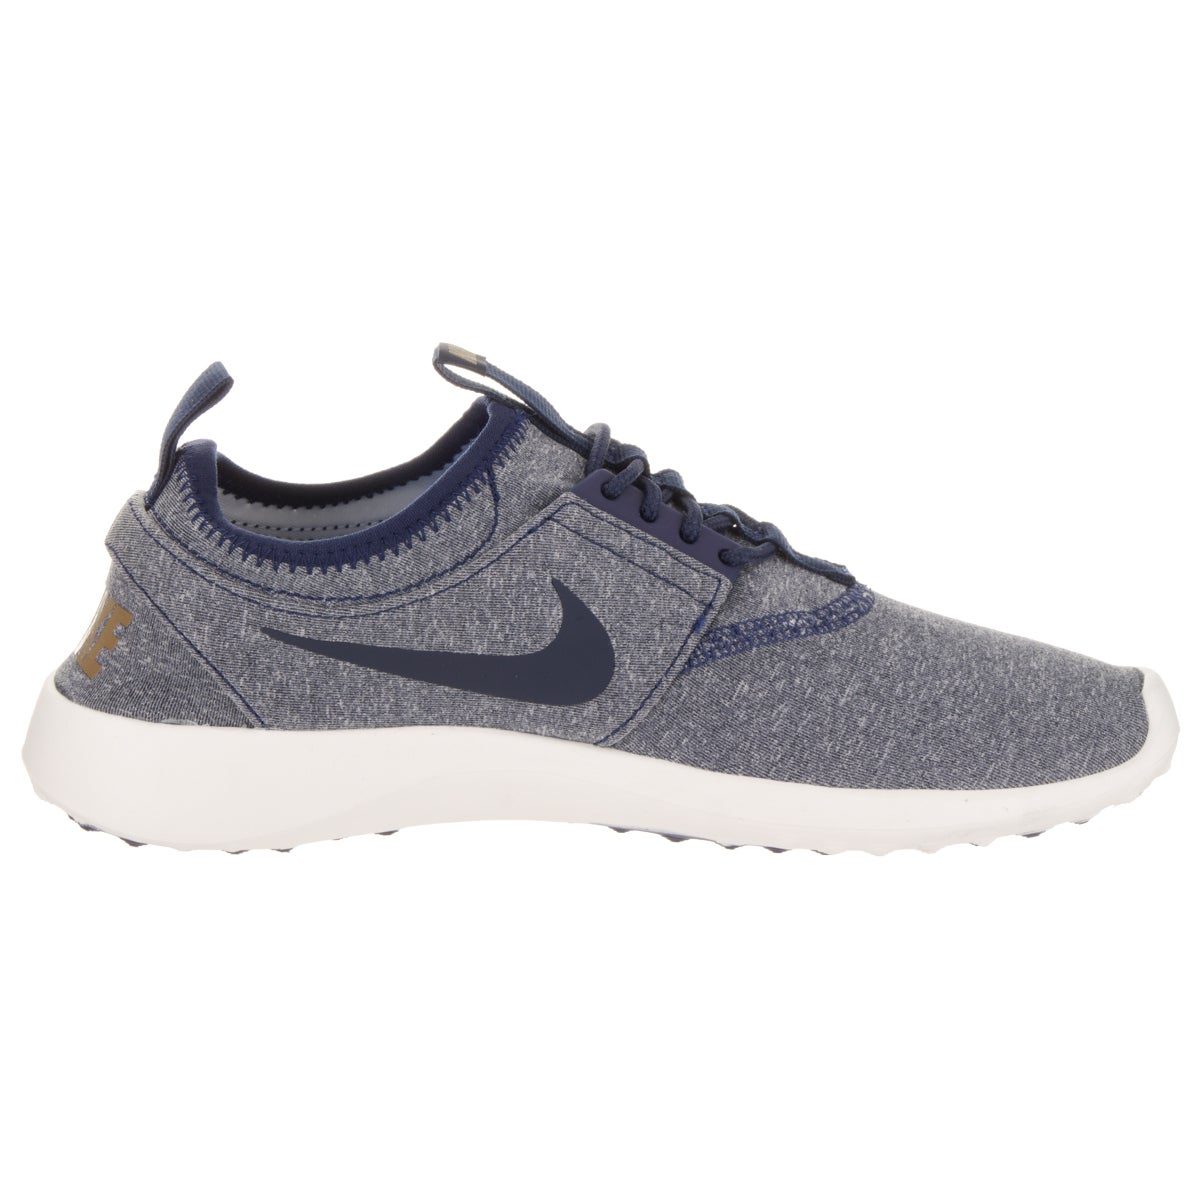 ed0436510 Shop Nike Women's Juvenate SE Grey Fabric Casual Shoes - Free Shipping  Today - Overstock - 13934279